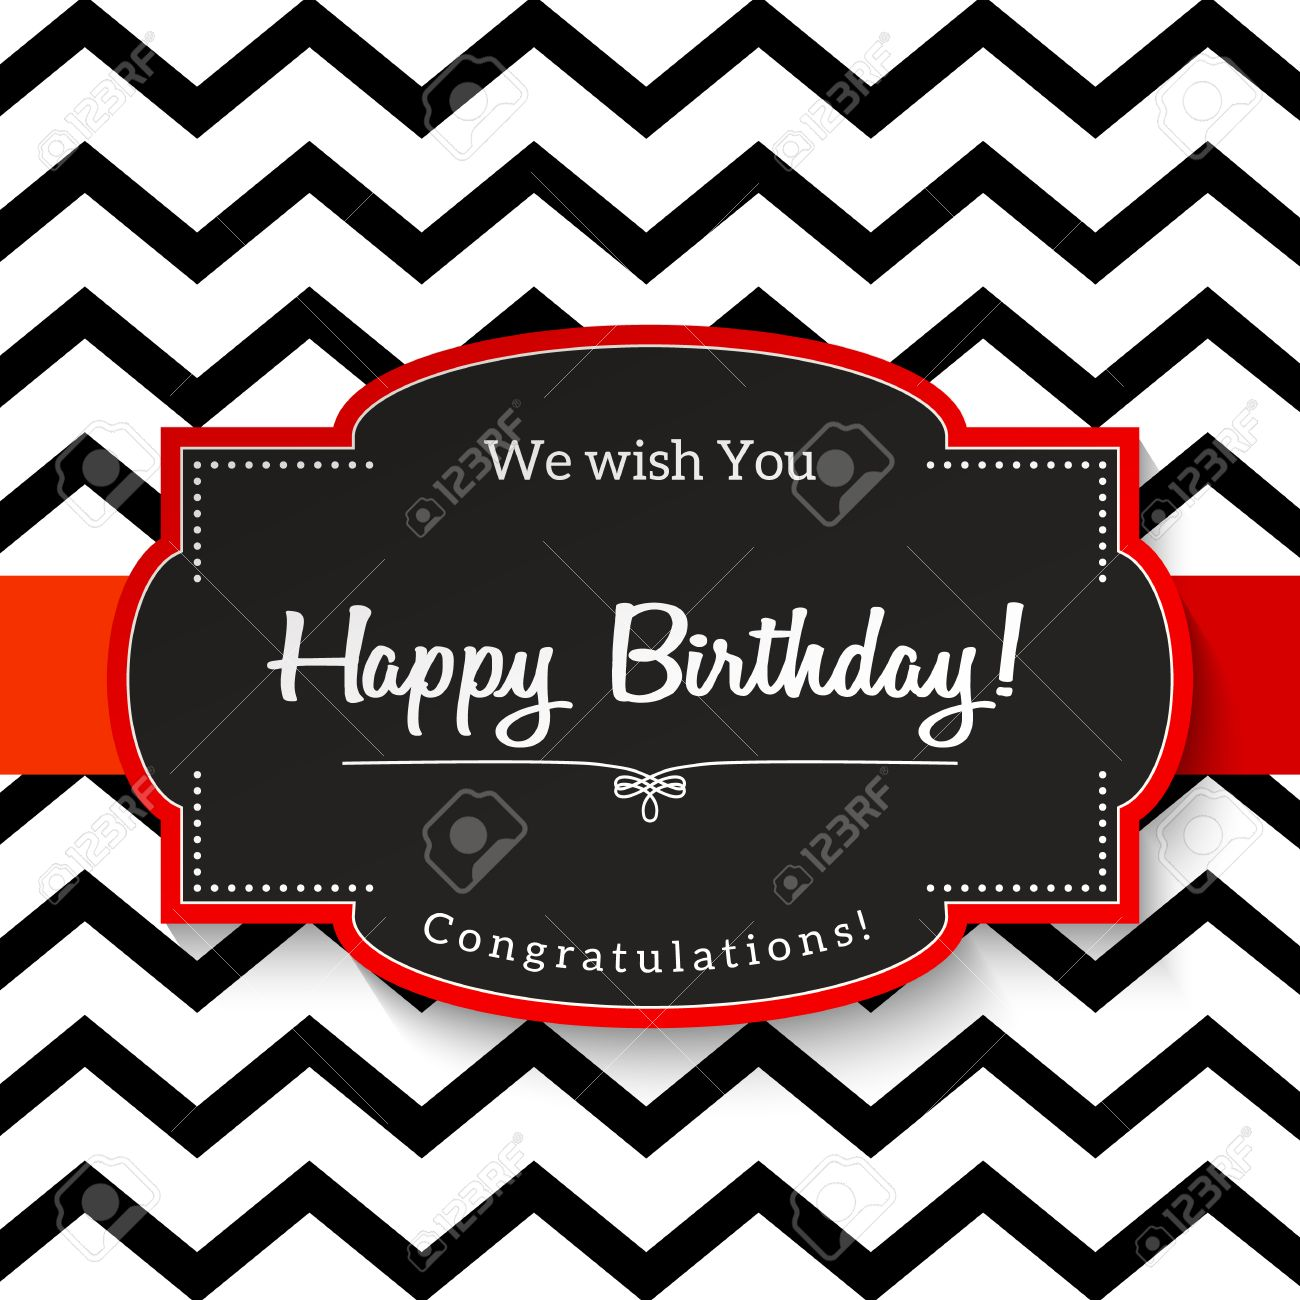 sticker birthday card ; 57838081-elrgant-vntage-greeting-card-with-text-happy-birthday-black-sticker-with-red-border-on-abstract-chev